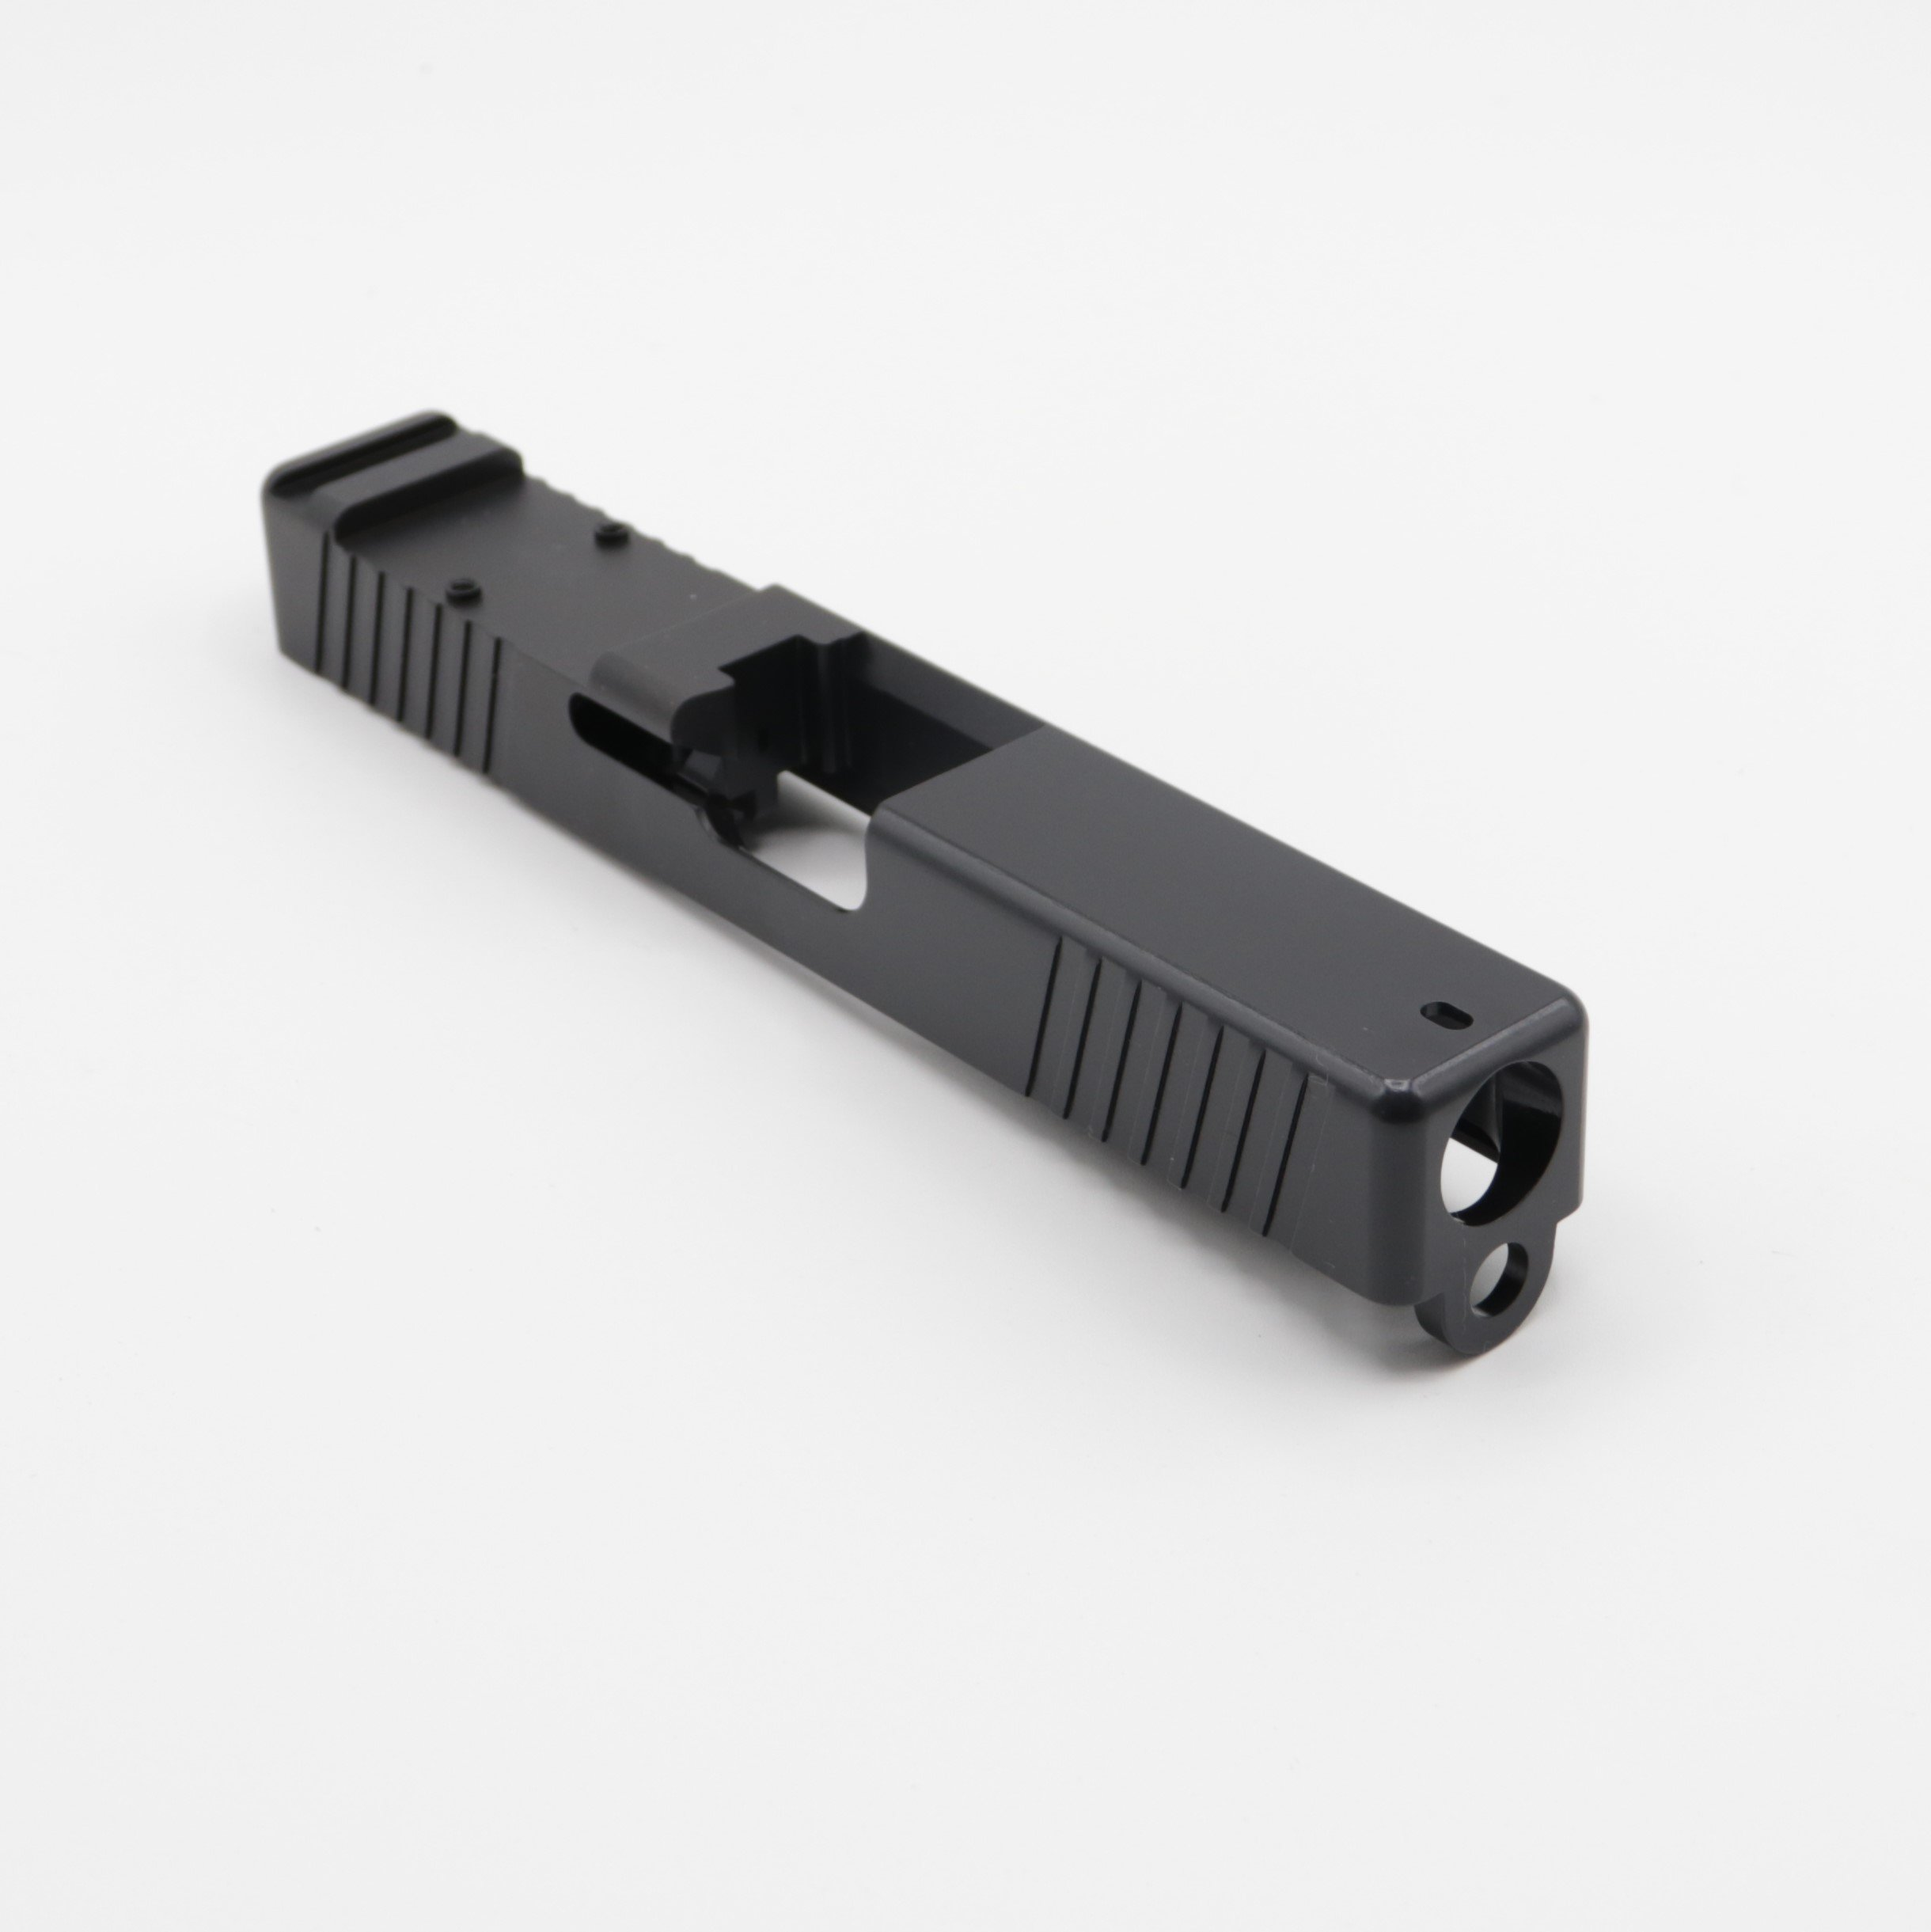 Glock 17 and 19 Radius Edged Slides with RMR Cut - $169 99 shipped